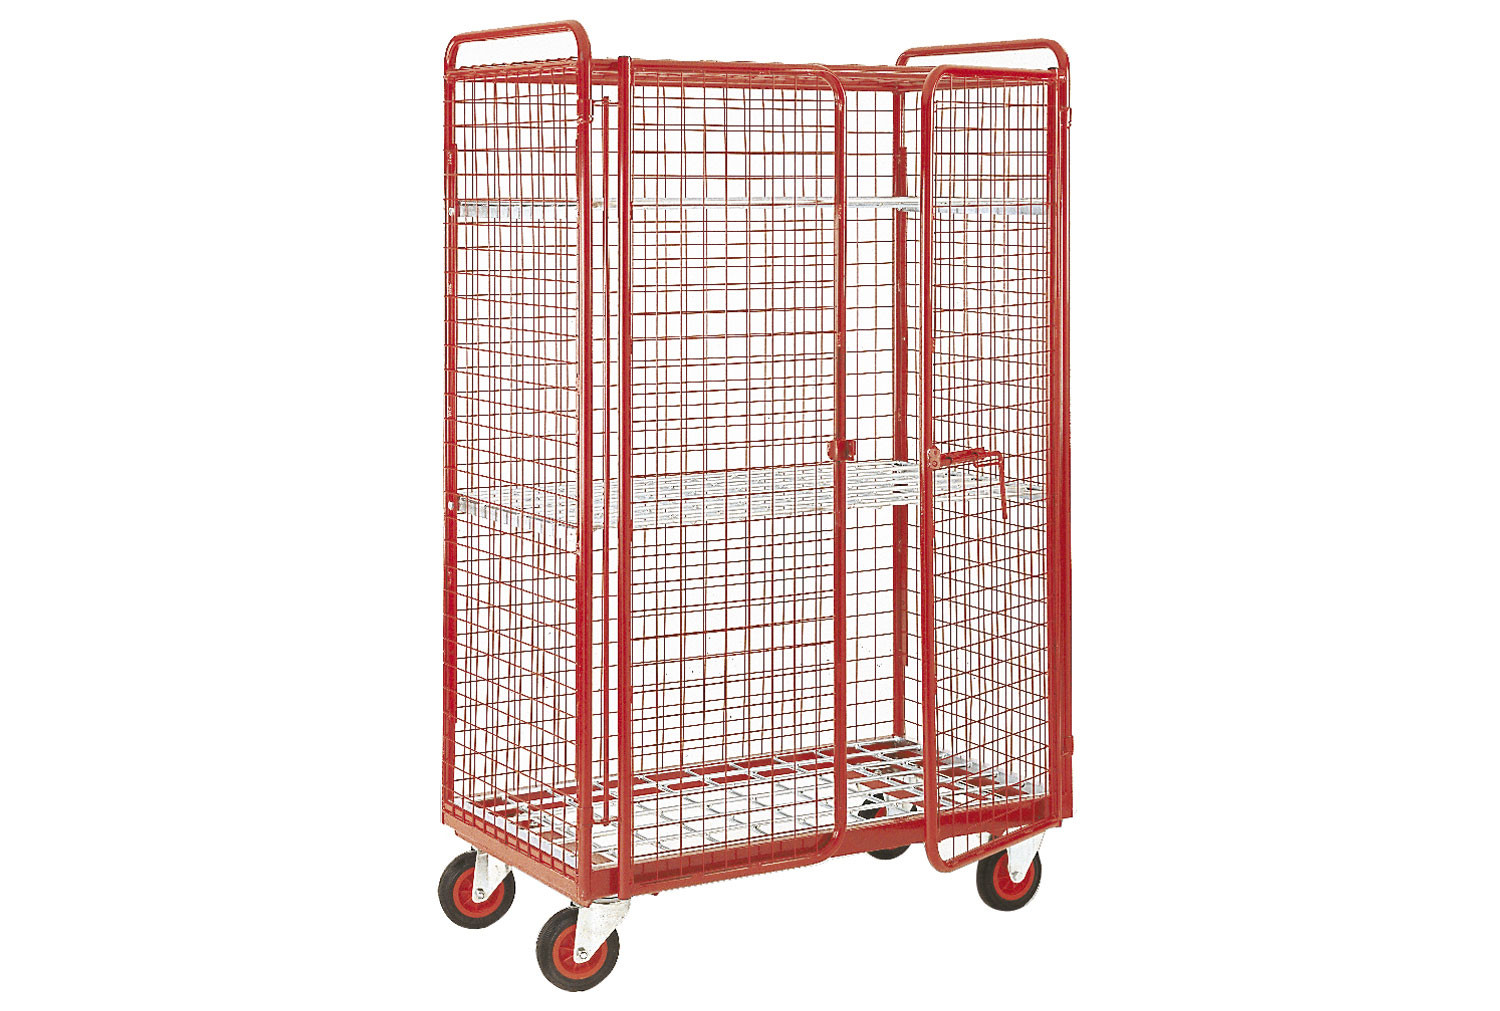 Narrow Aisle Full Security Distribution Truck With 2 Shelves